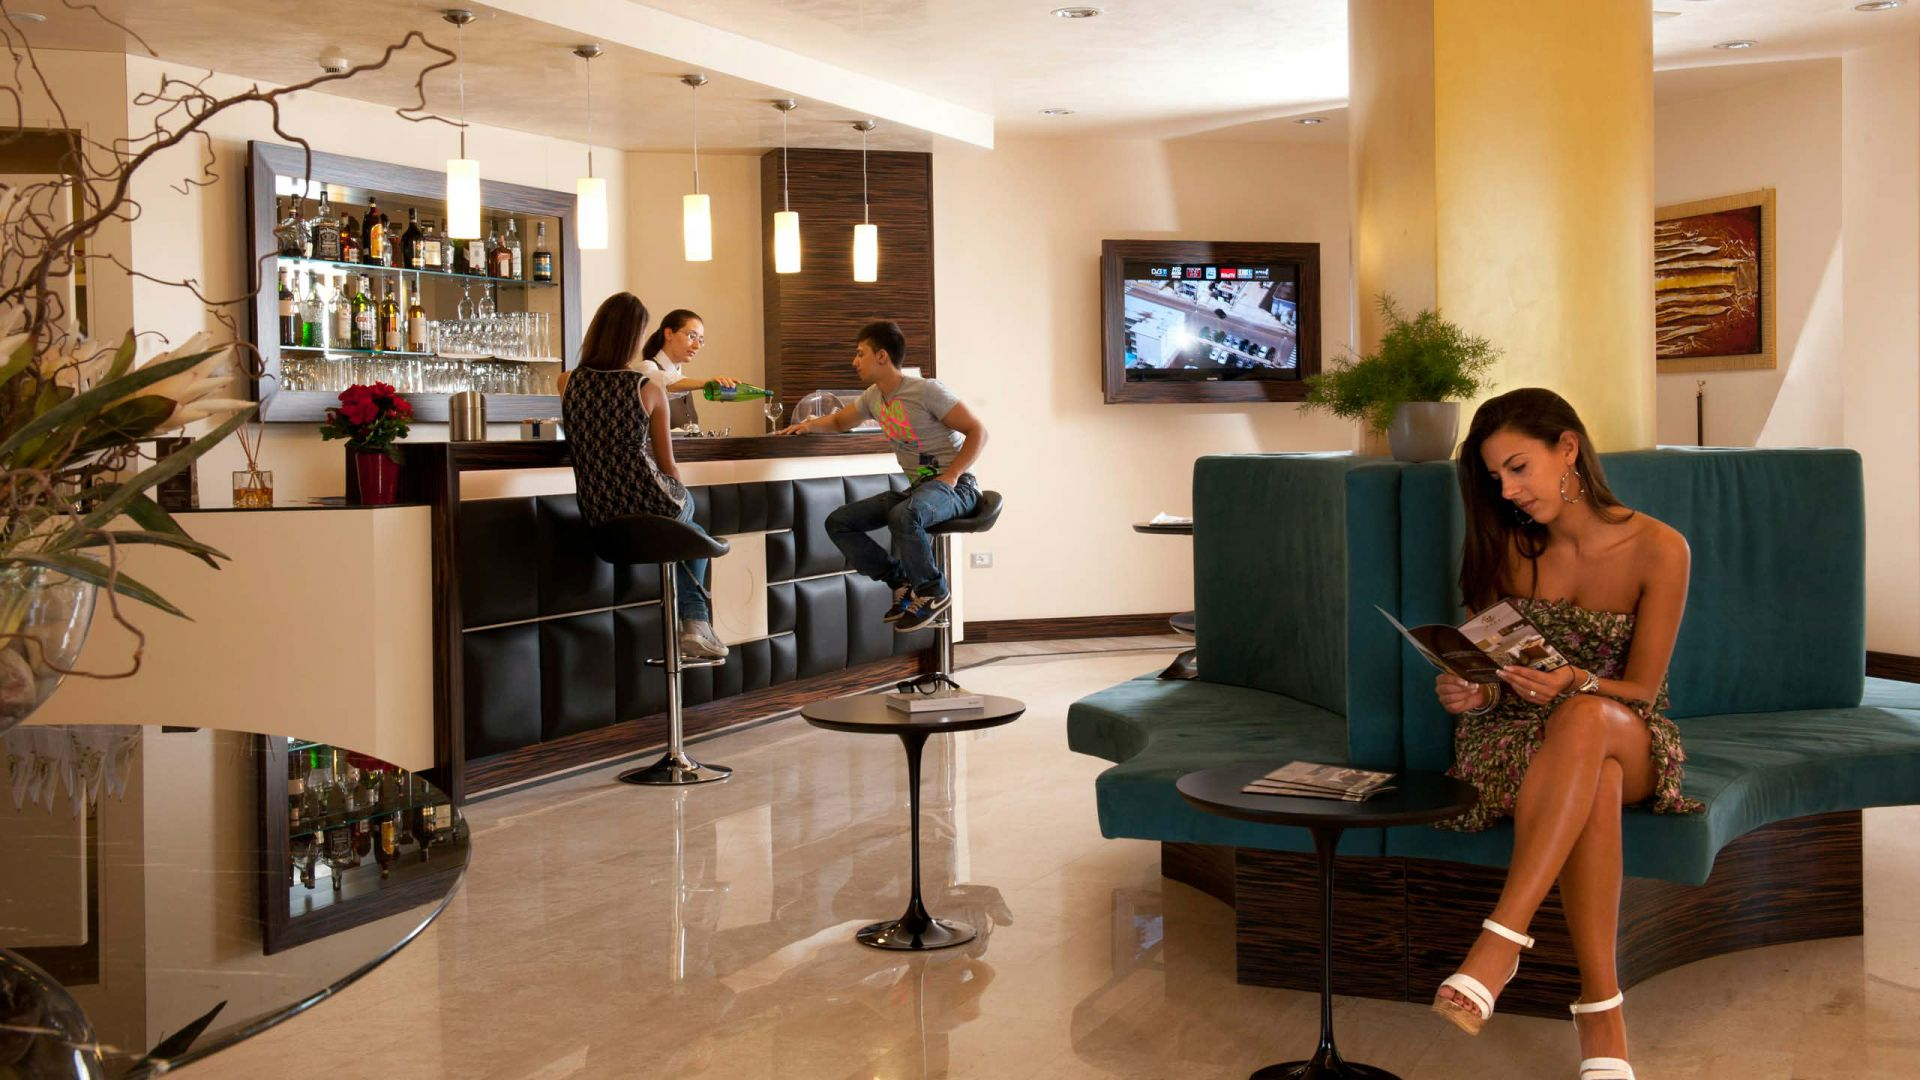 oc-hotel-rome-common-areas-002